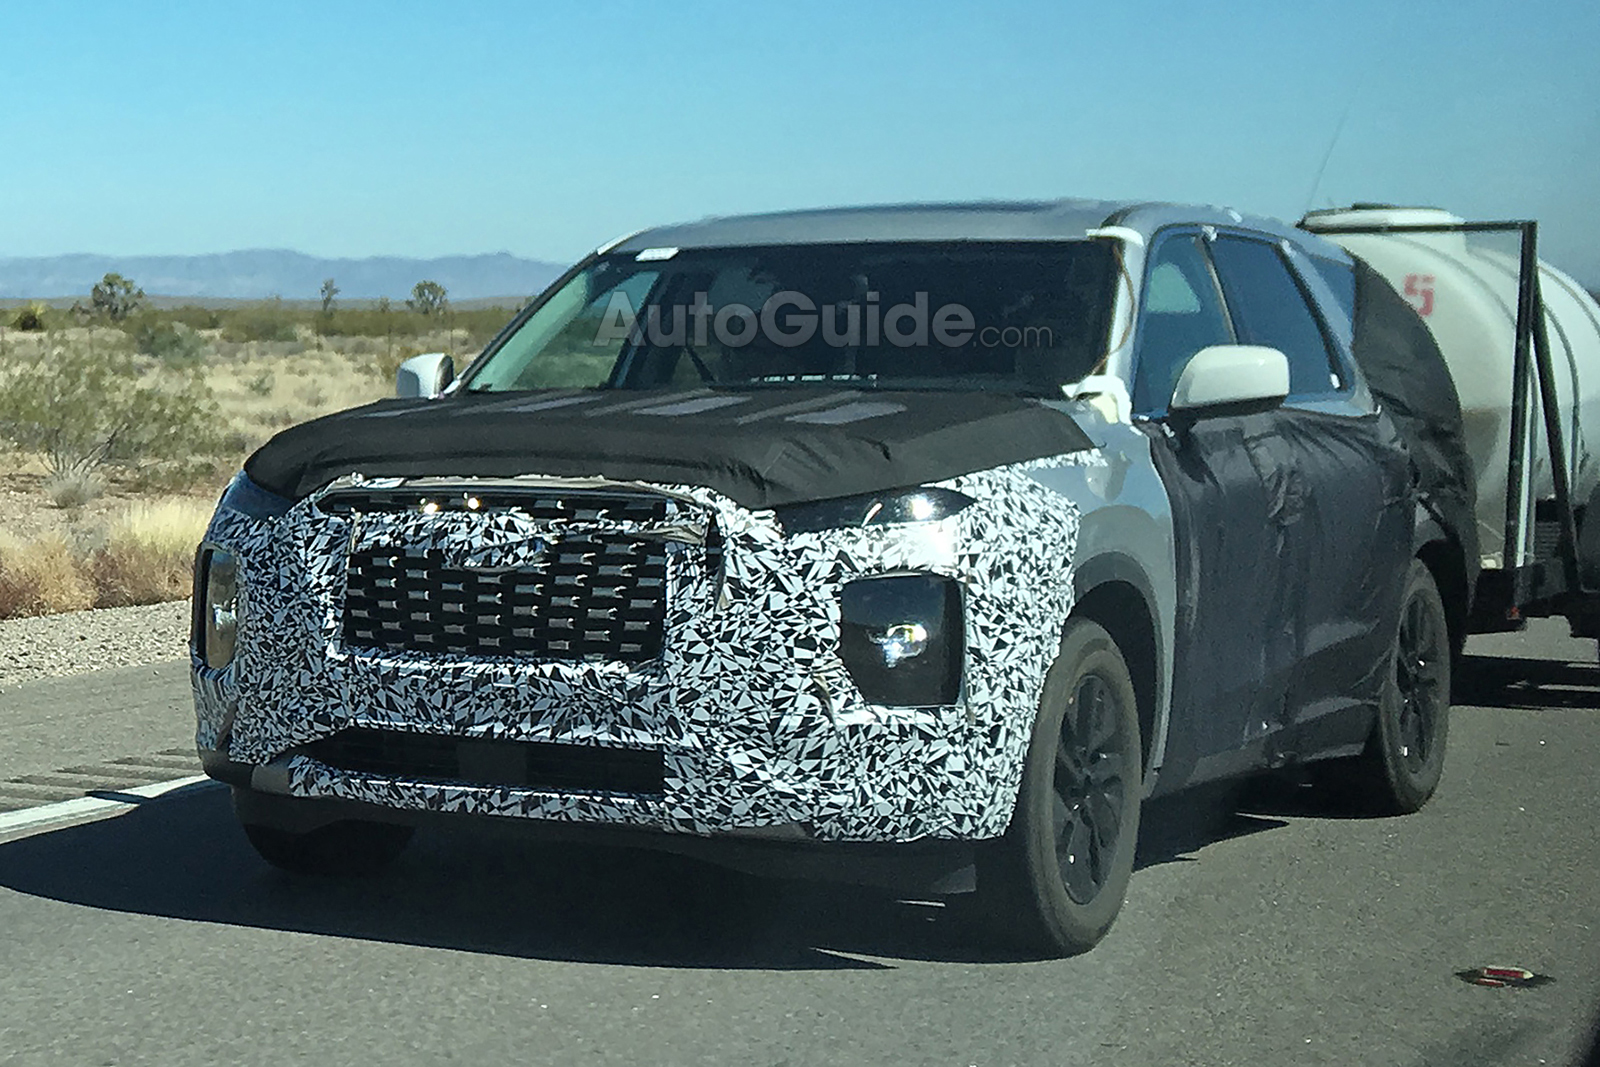 2020 Hyundai Palisade Spied Ahead of Next Year's Debut ...